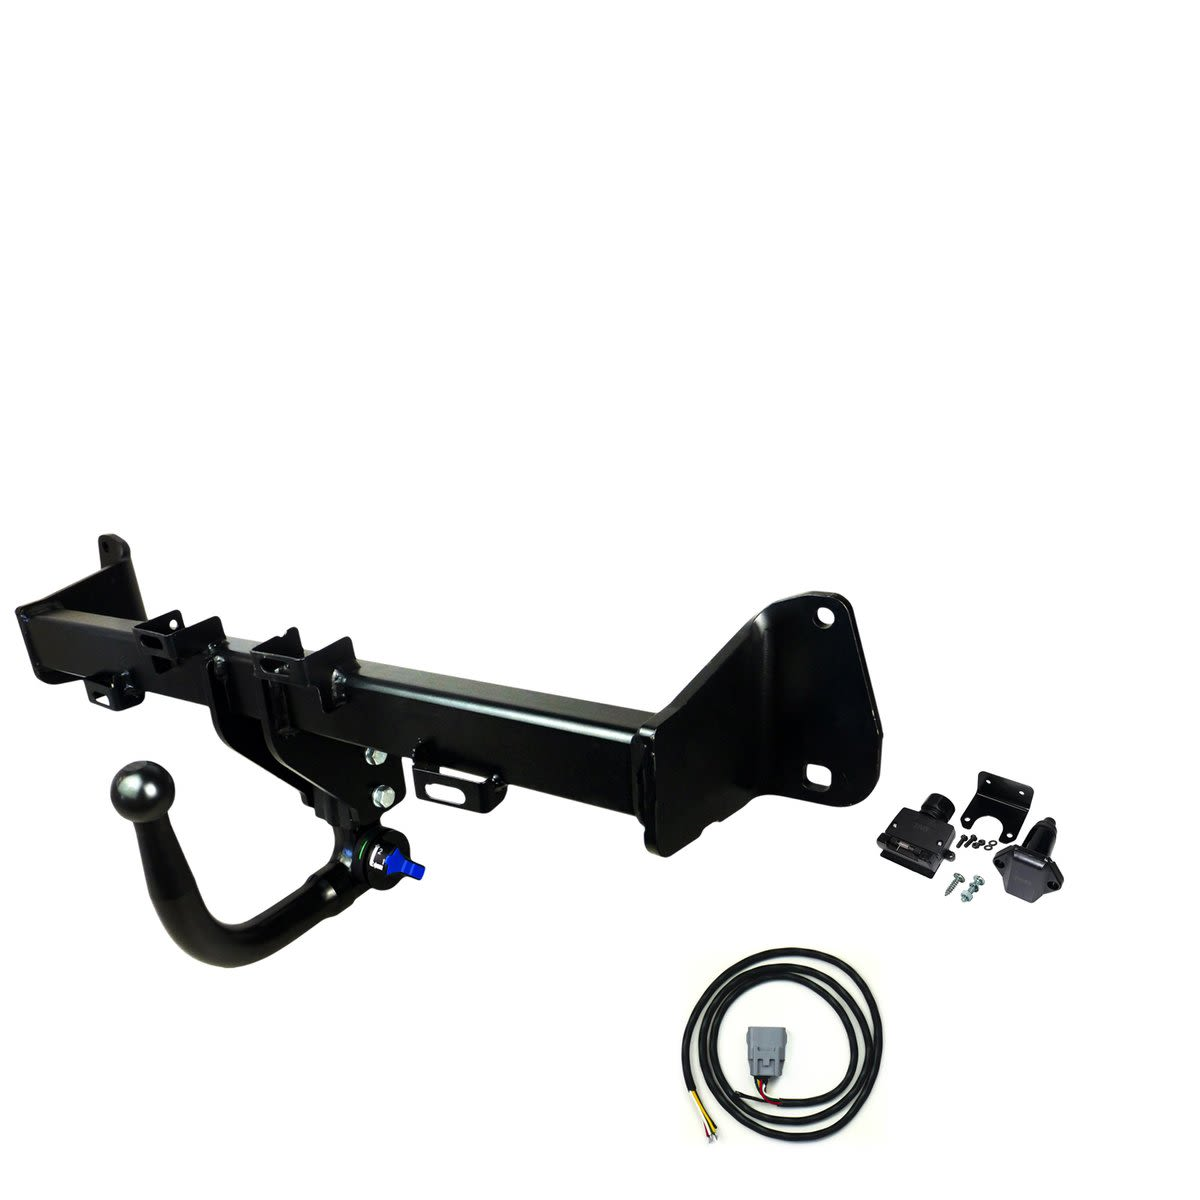 TAG Towbars European Style Tongue to suit Audi A3 (02/2013 - on)